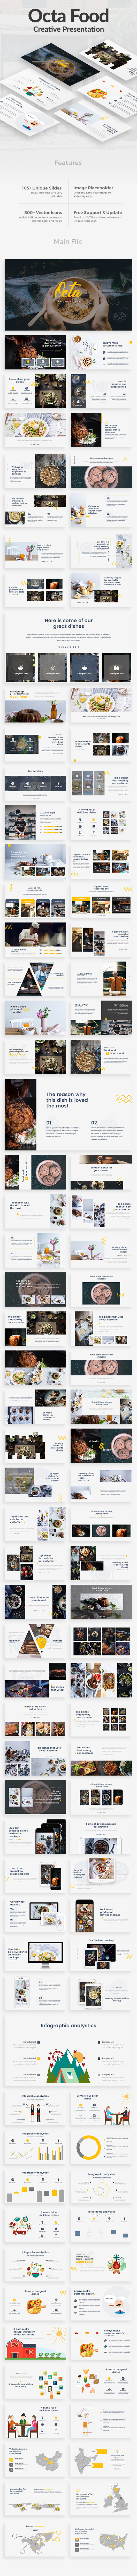 Octa Food Powerpoint Template - Creative PowerPoint Templates